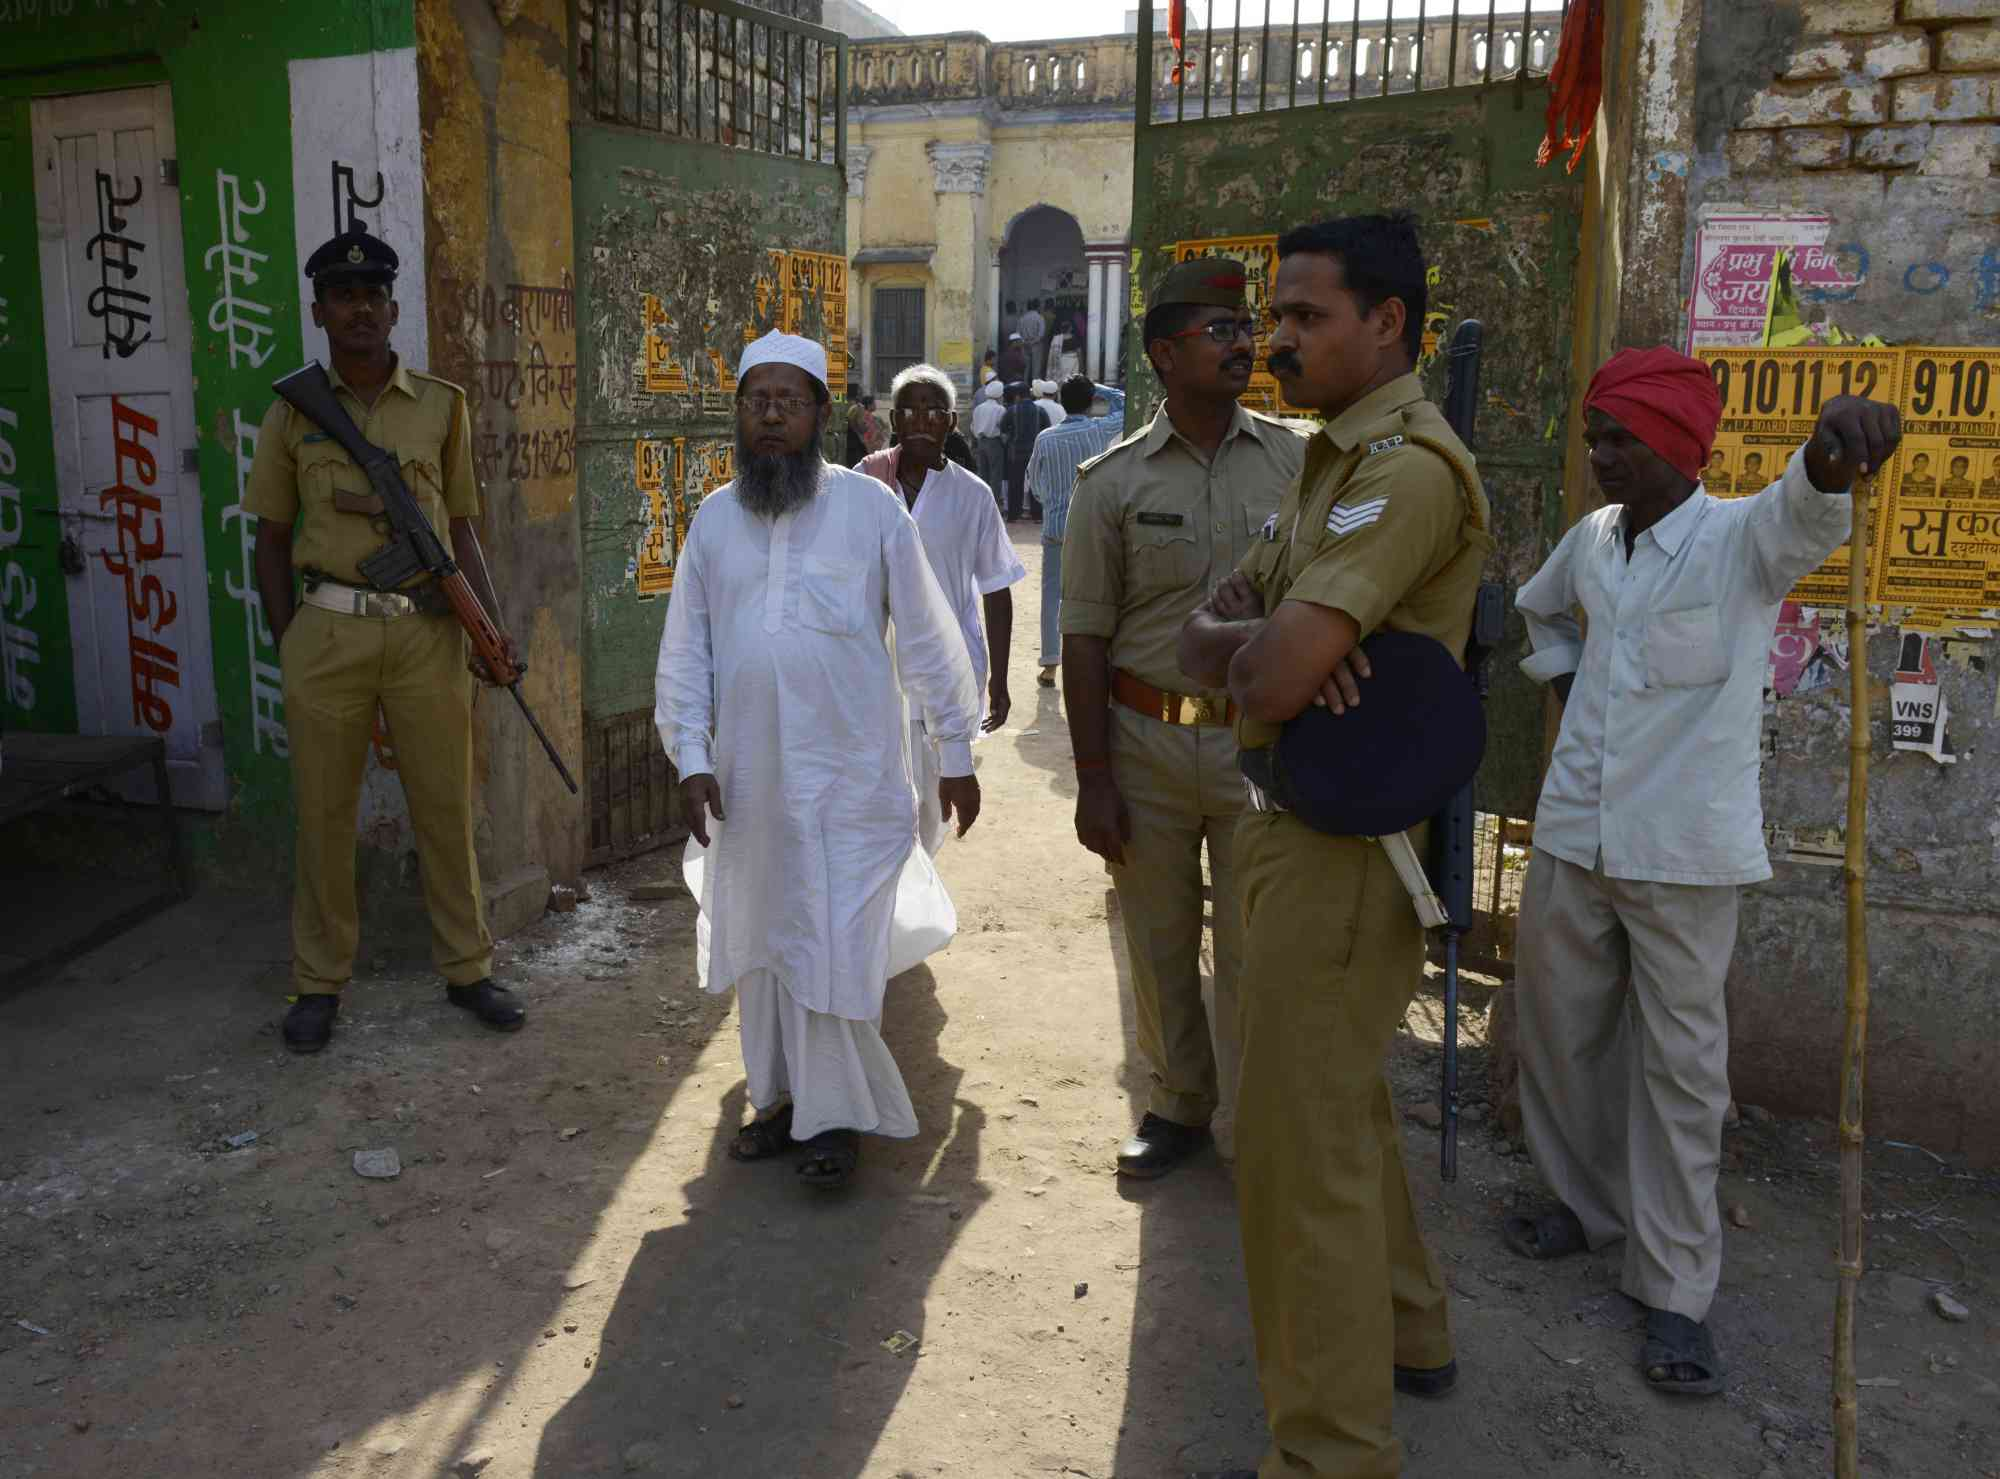 A Muslim voter exits a local polling station after casting his ballot in Varanasi on May 12, 2014. (Photo credit: Roberto Schmidt/AFP).